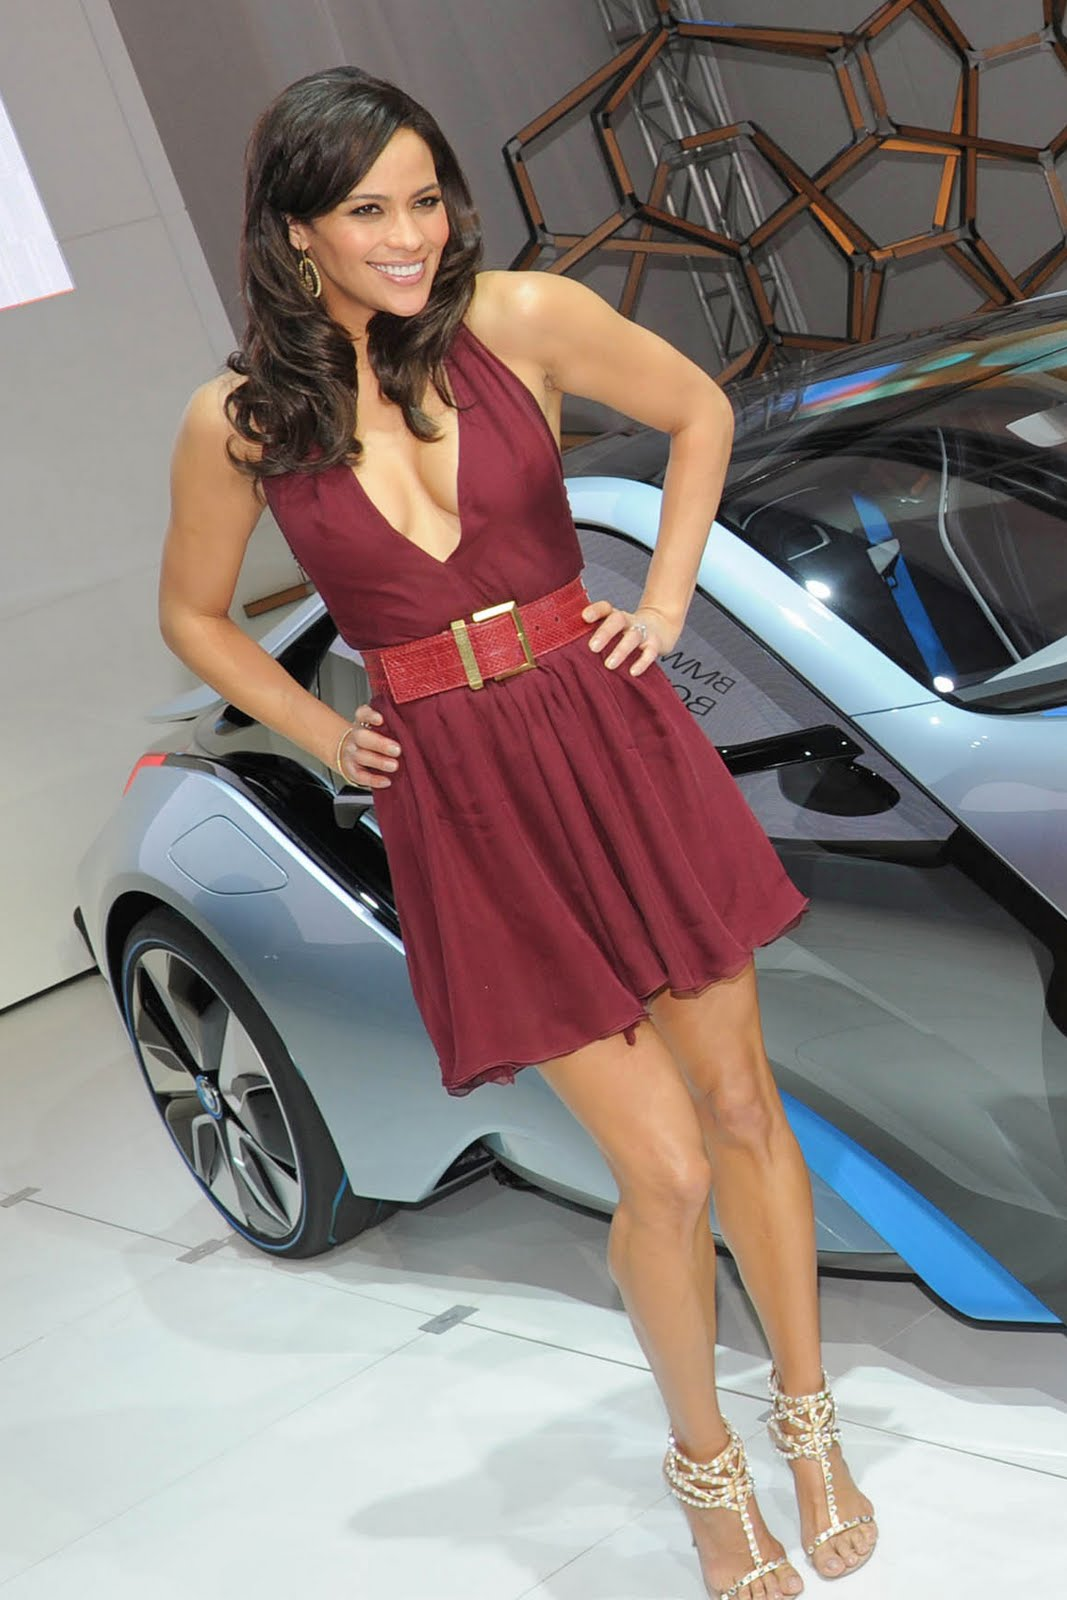 Paula Patton Hot in Mission Impossible 4